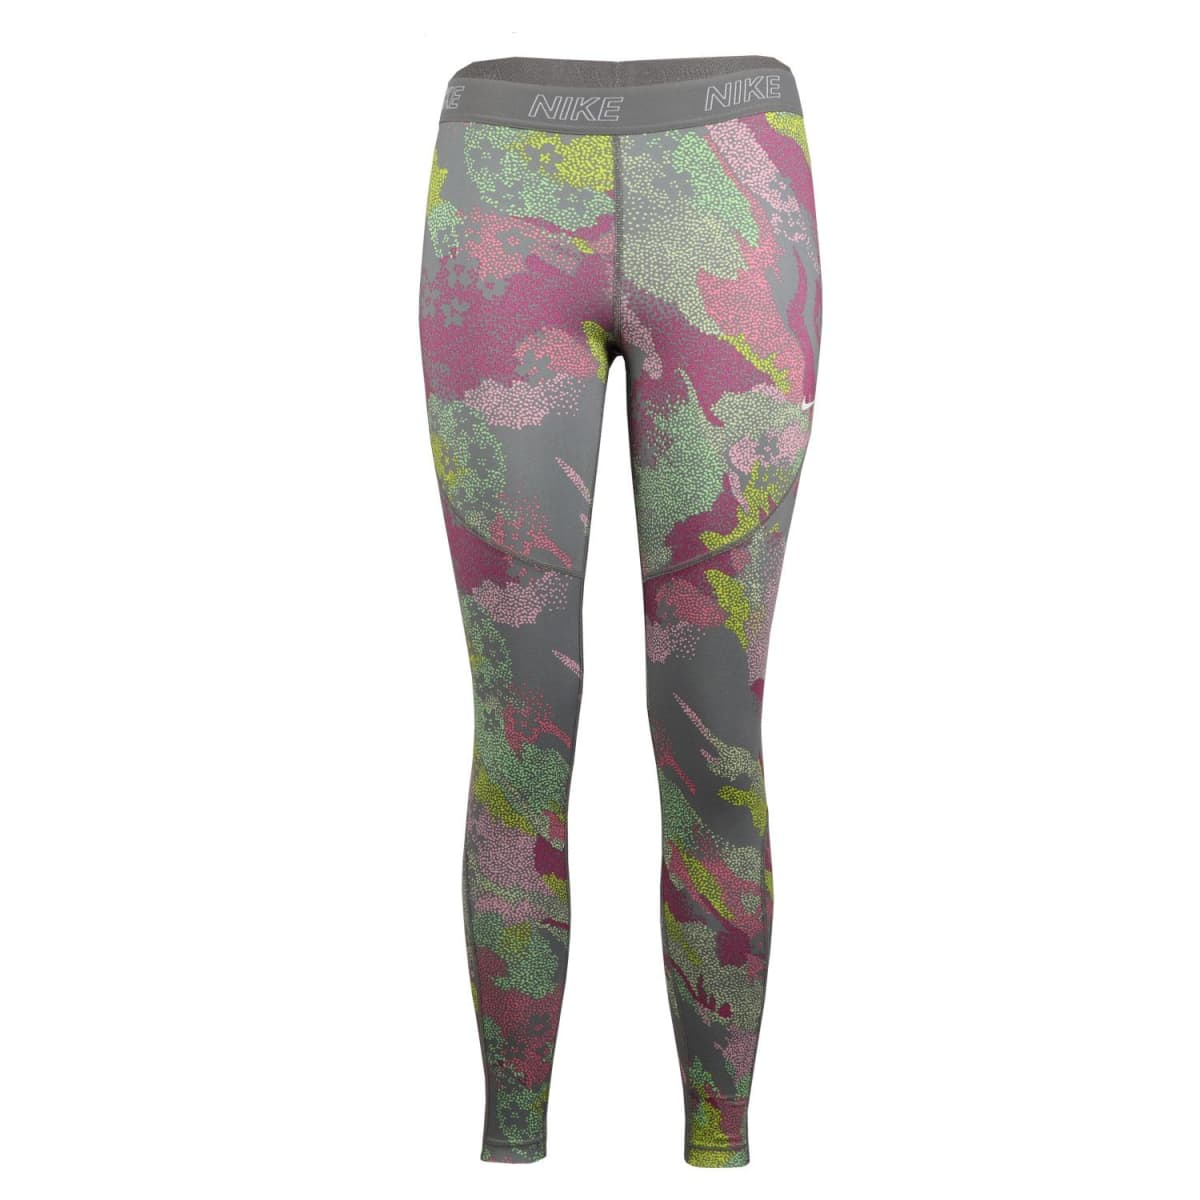 6c9f17abae23d Product Image. Nike Woman's Modern Floral Victory Tight